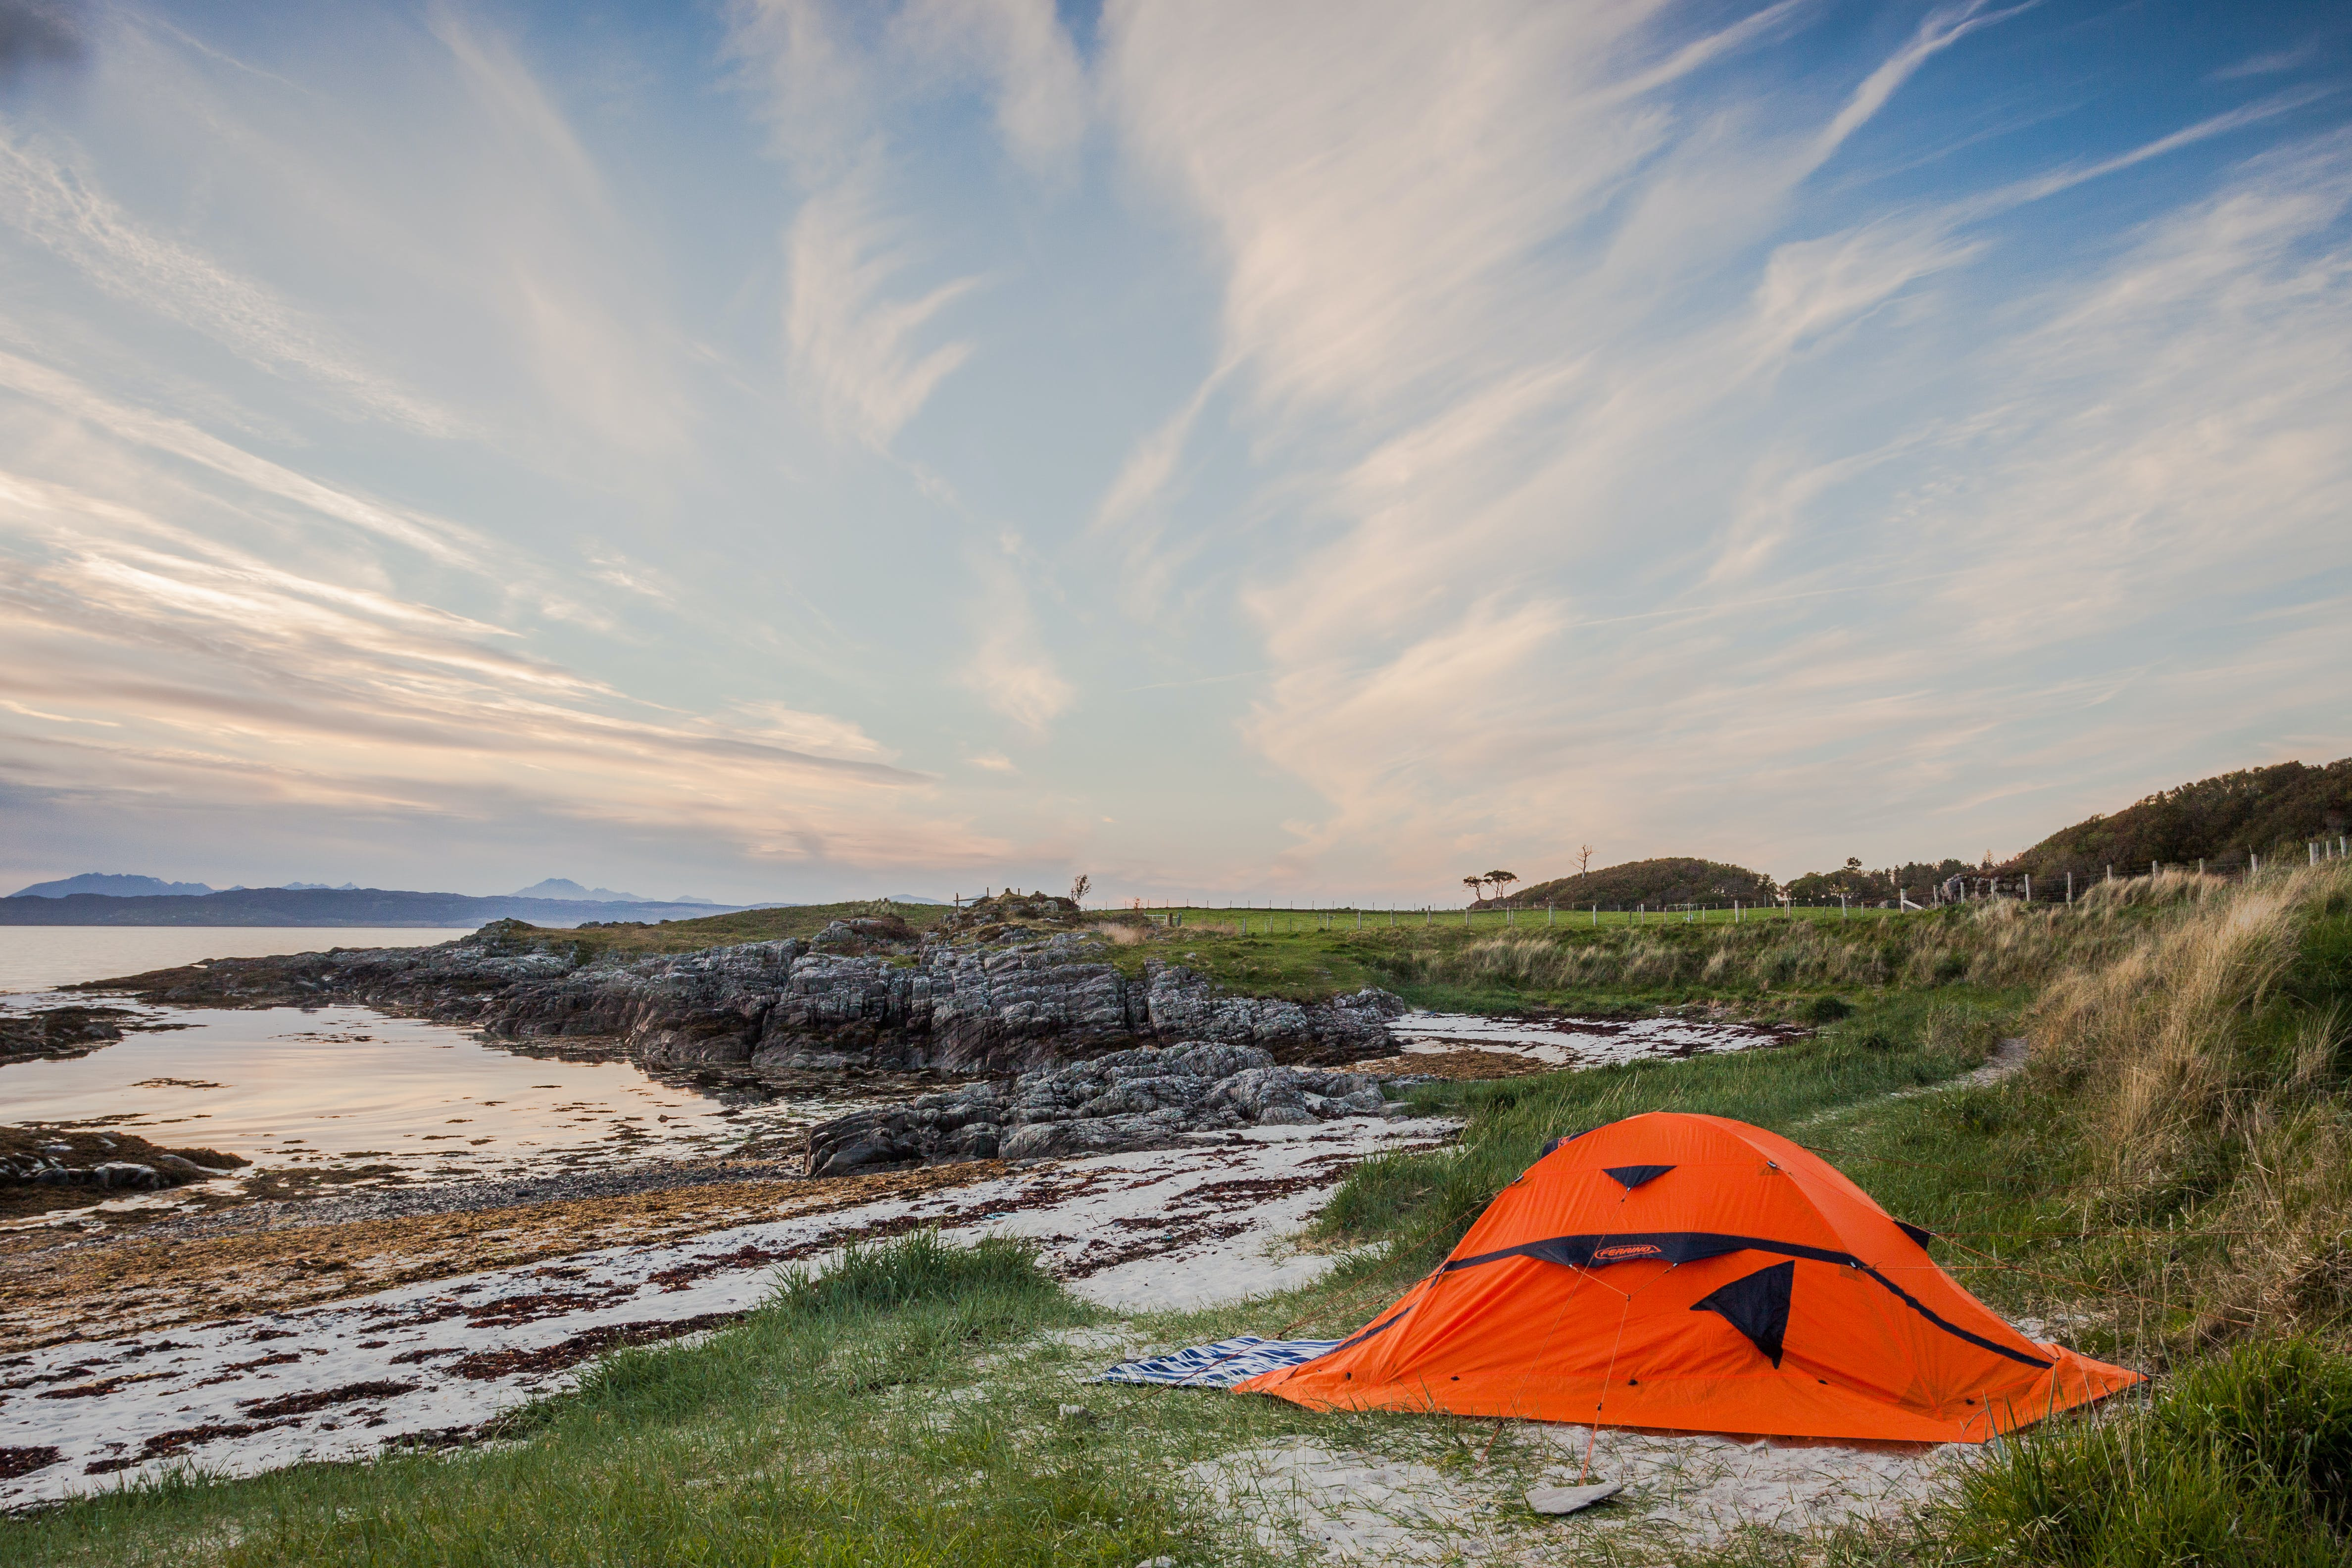 Orange Camping Tent Near Body of Water during Daytime